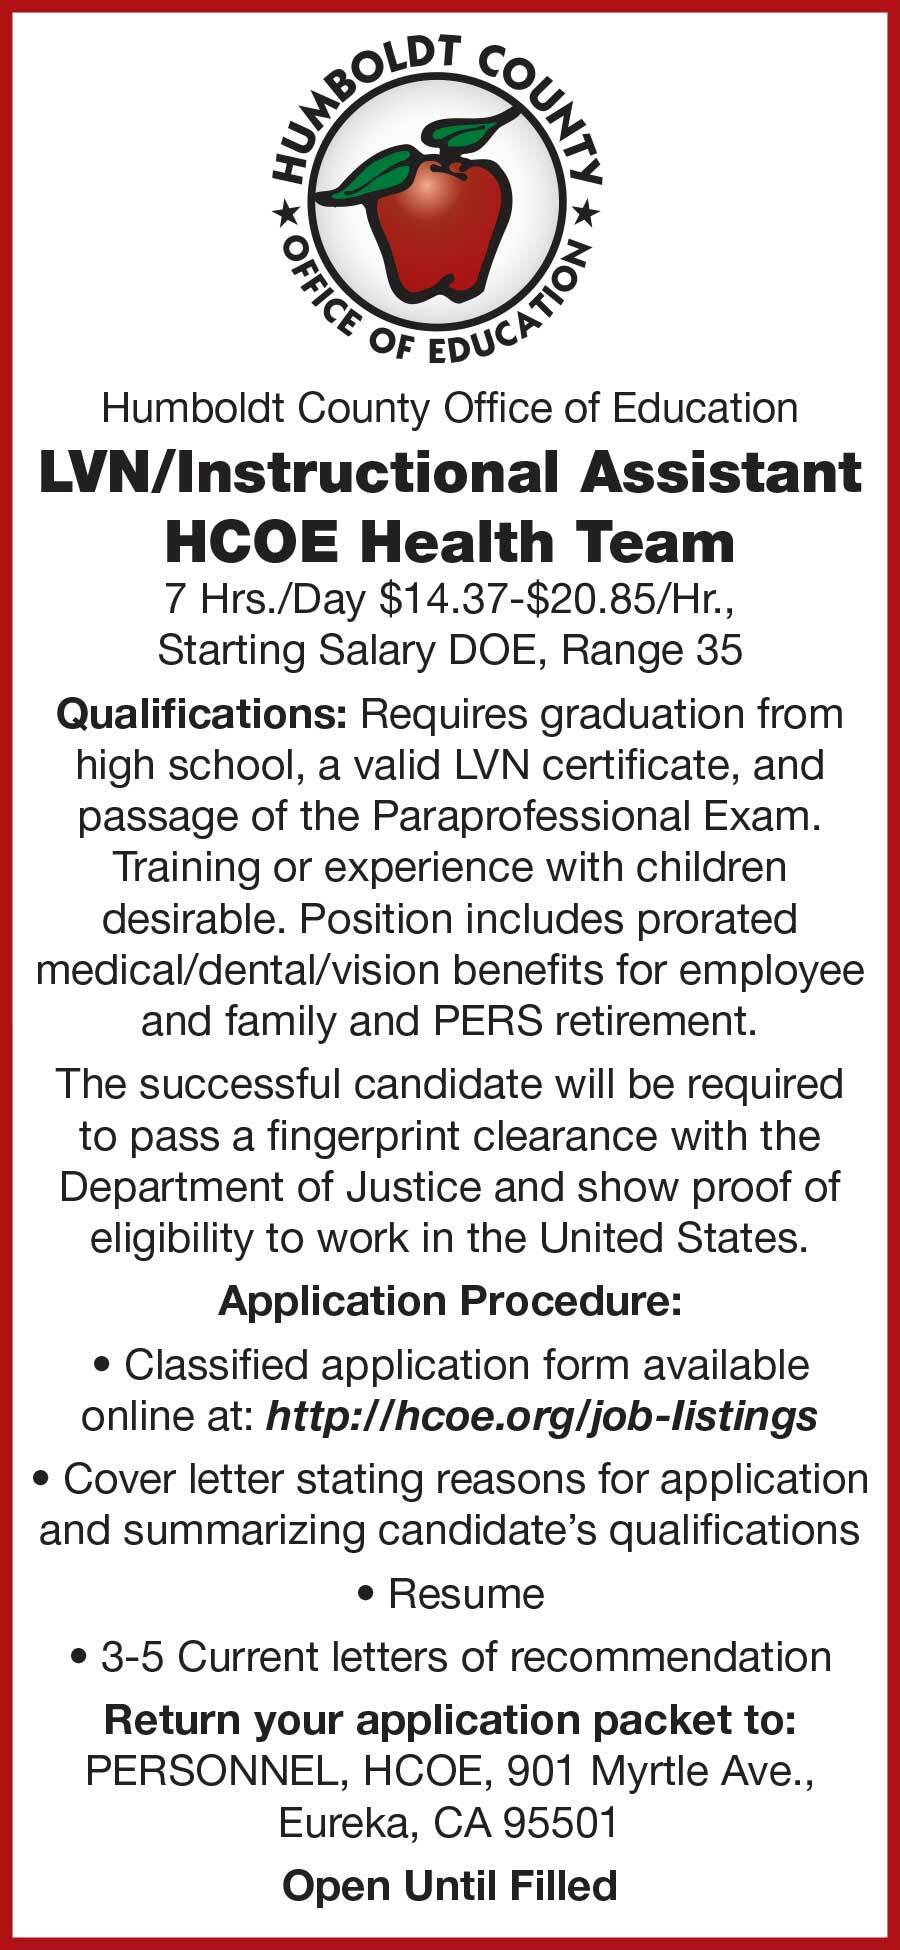 North Coast Journal Humboldt County Classifieds Employment